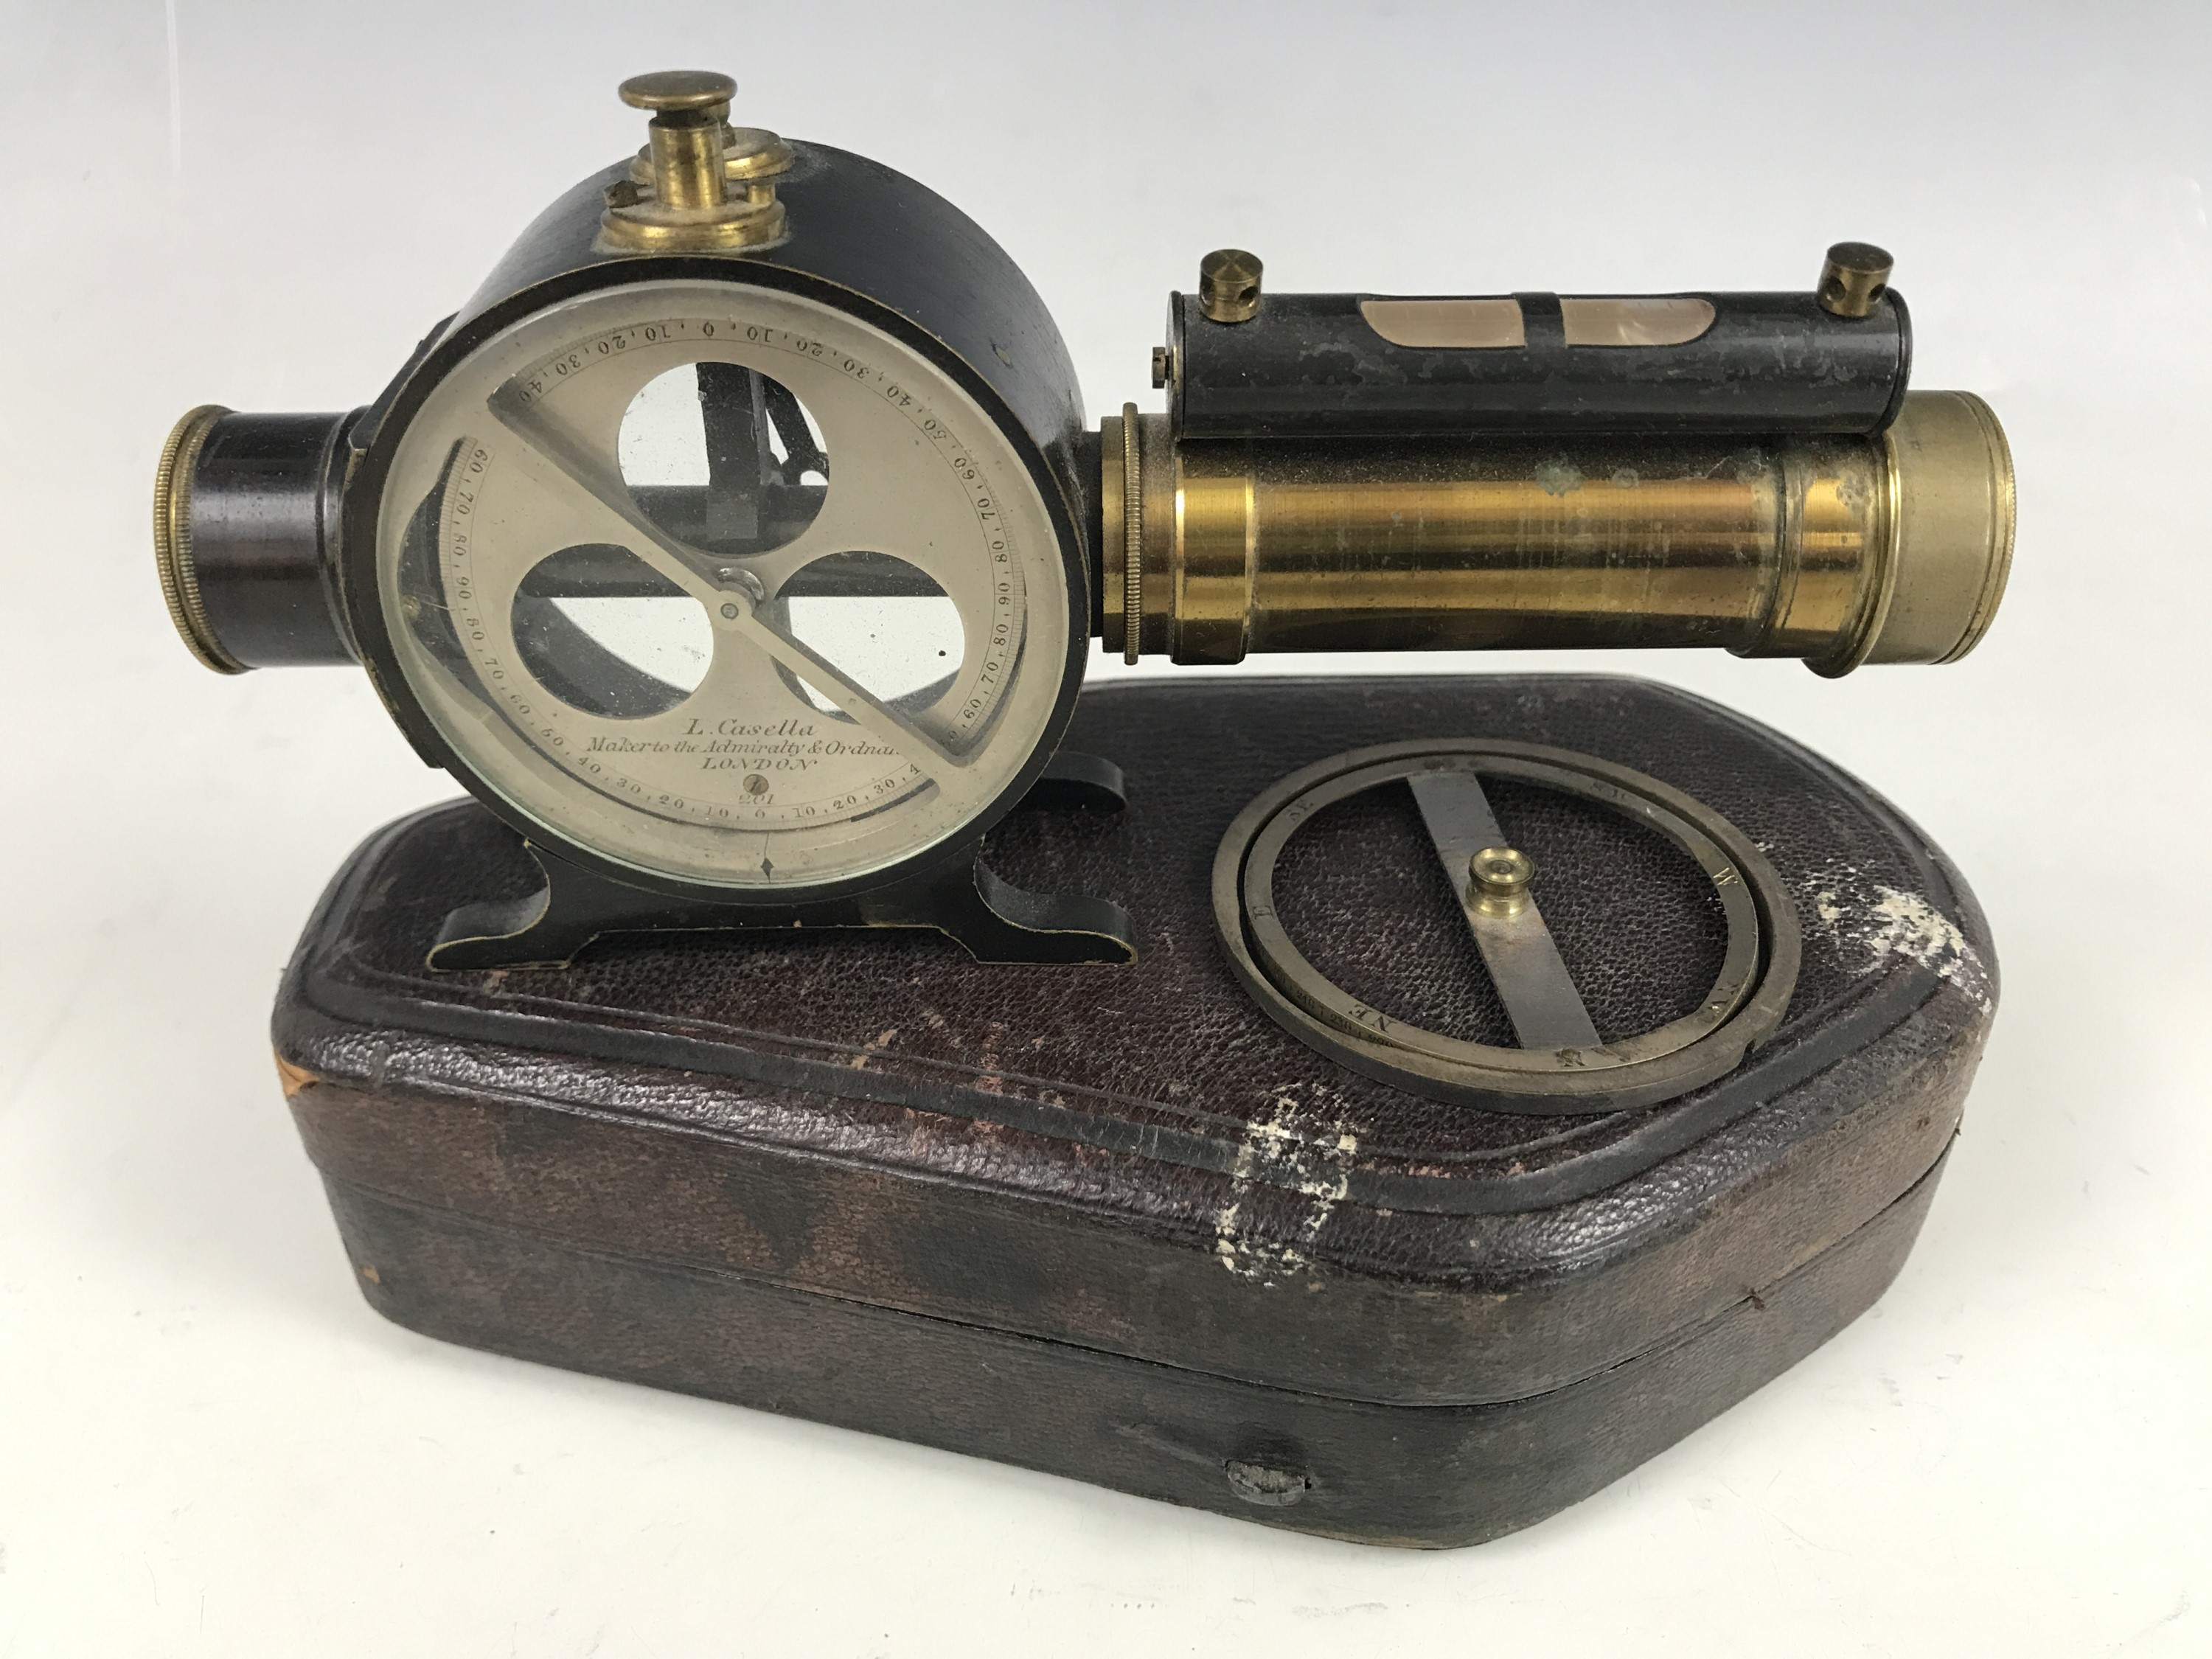 Lot 25 - A Victorian pocket combination compass and level by L Cassella, Maker to the Admiralty and Ordnance,